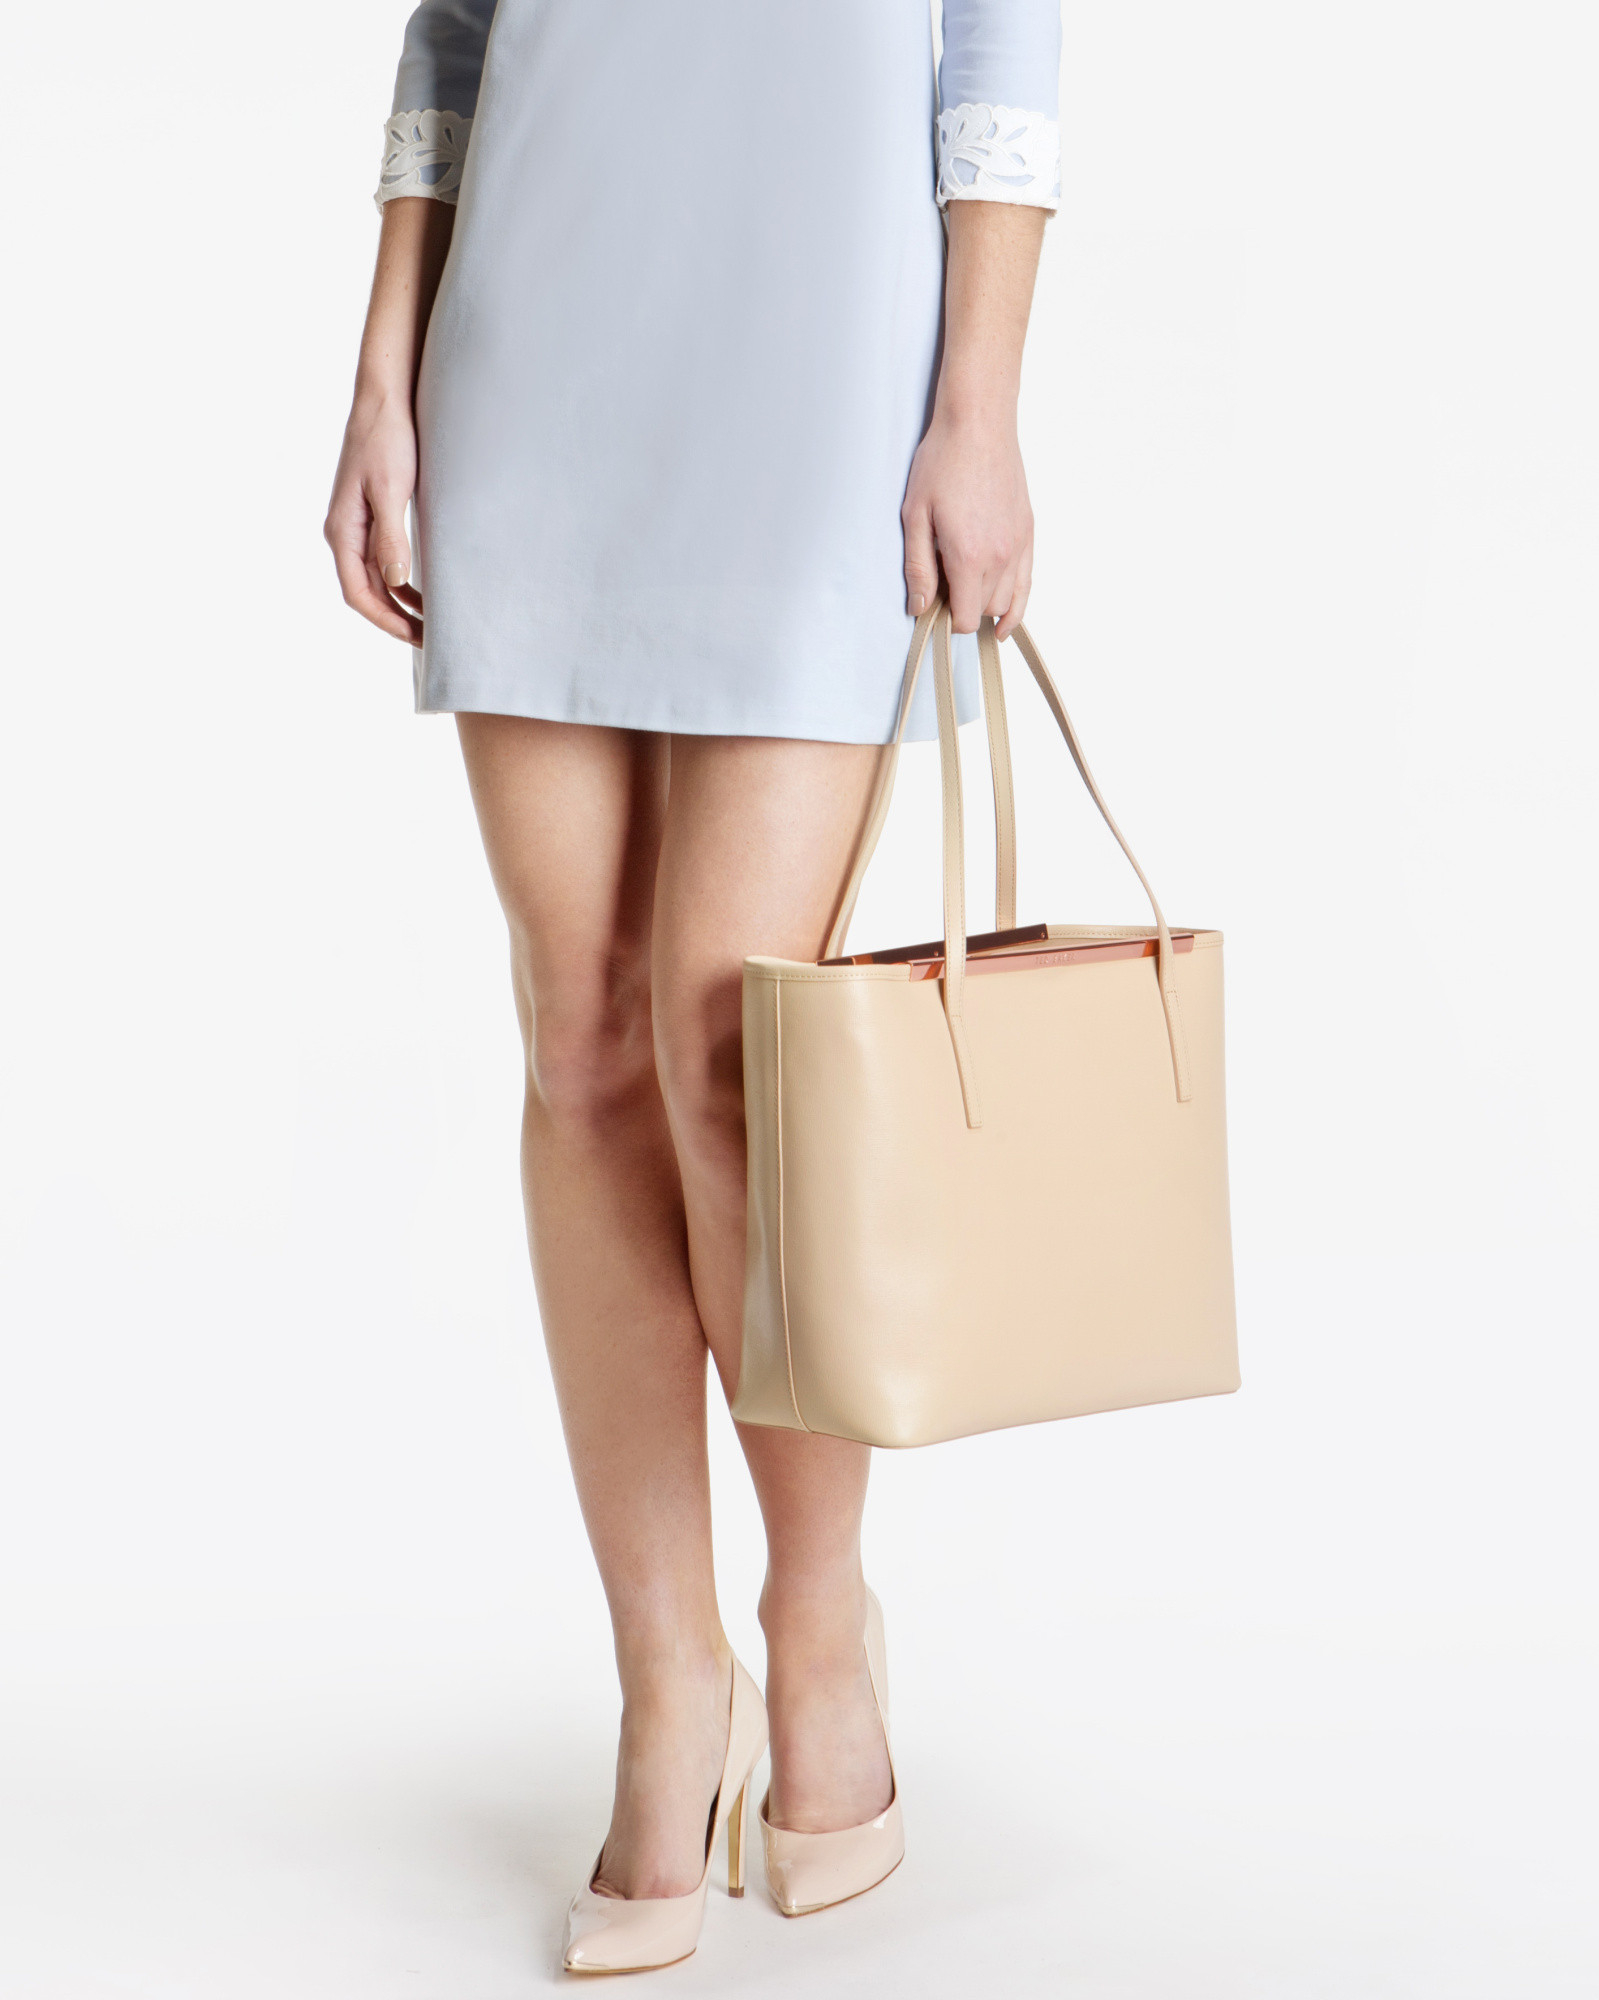 b3a967b52 Ted Baker Crosshatch Leather Shopper Bag in Natural - Lyst